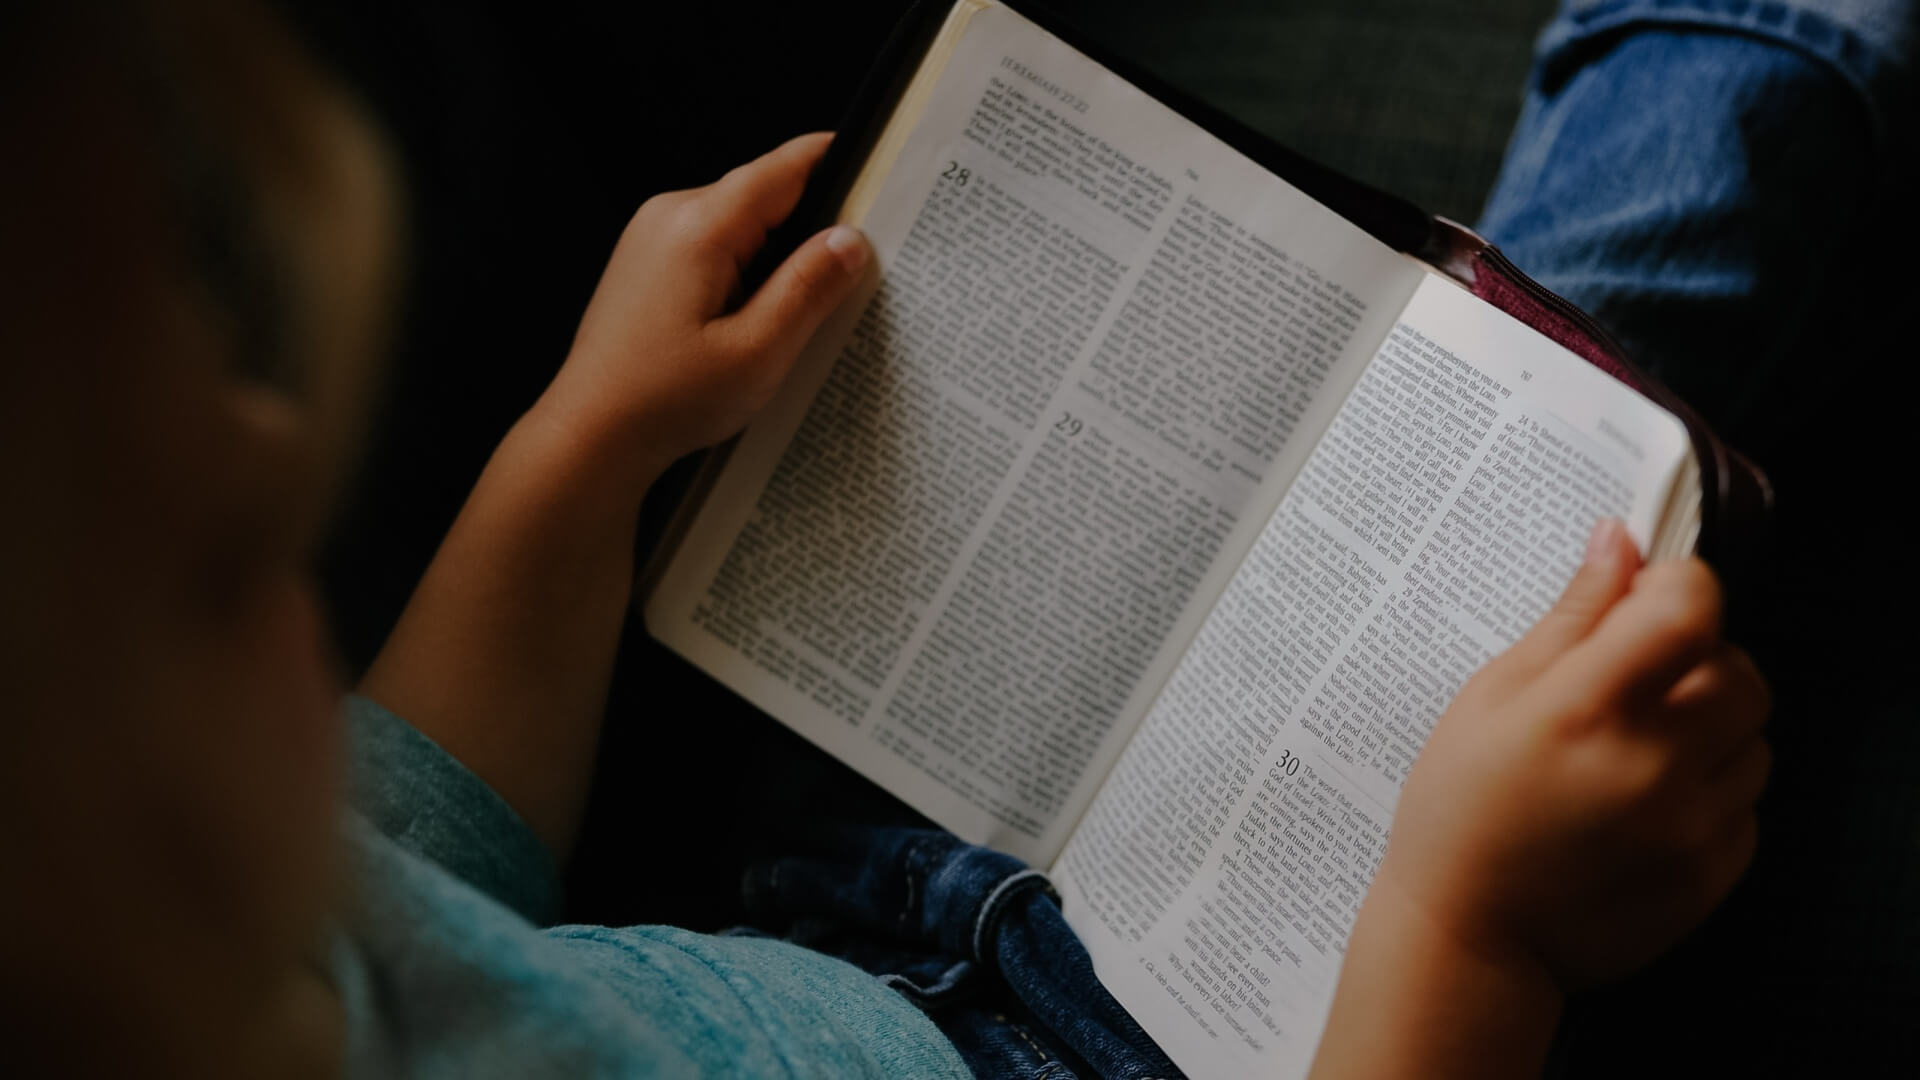 How to Read the Bible Well by Dr. John Neufeld of Back to the bible Canada